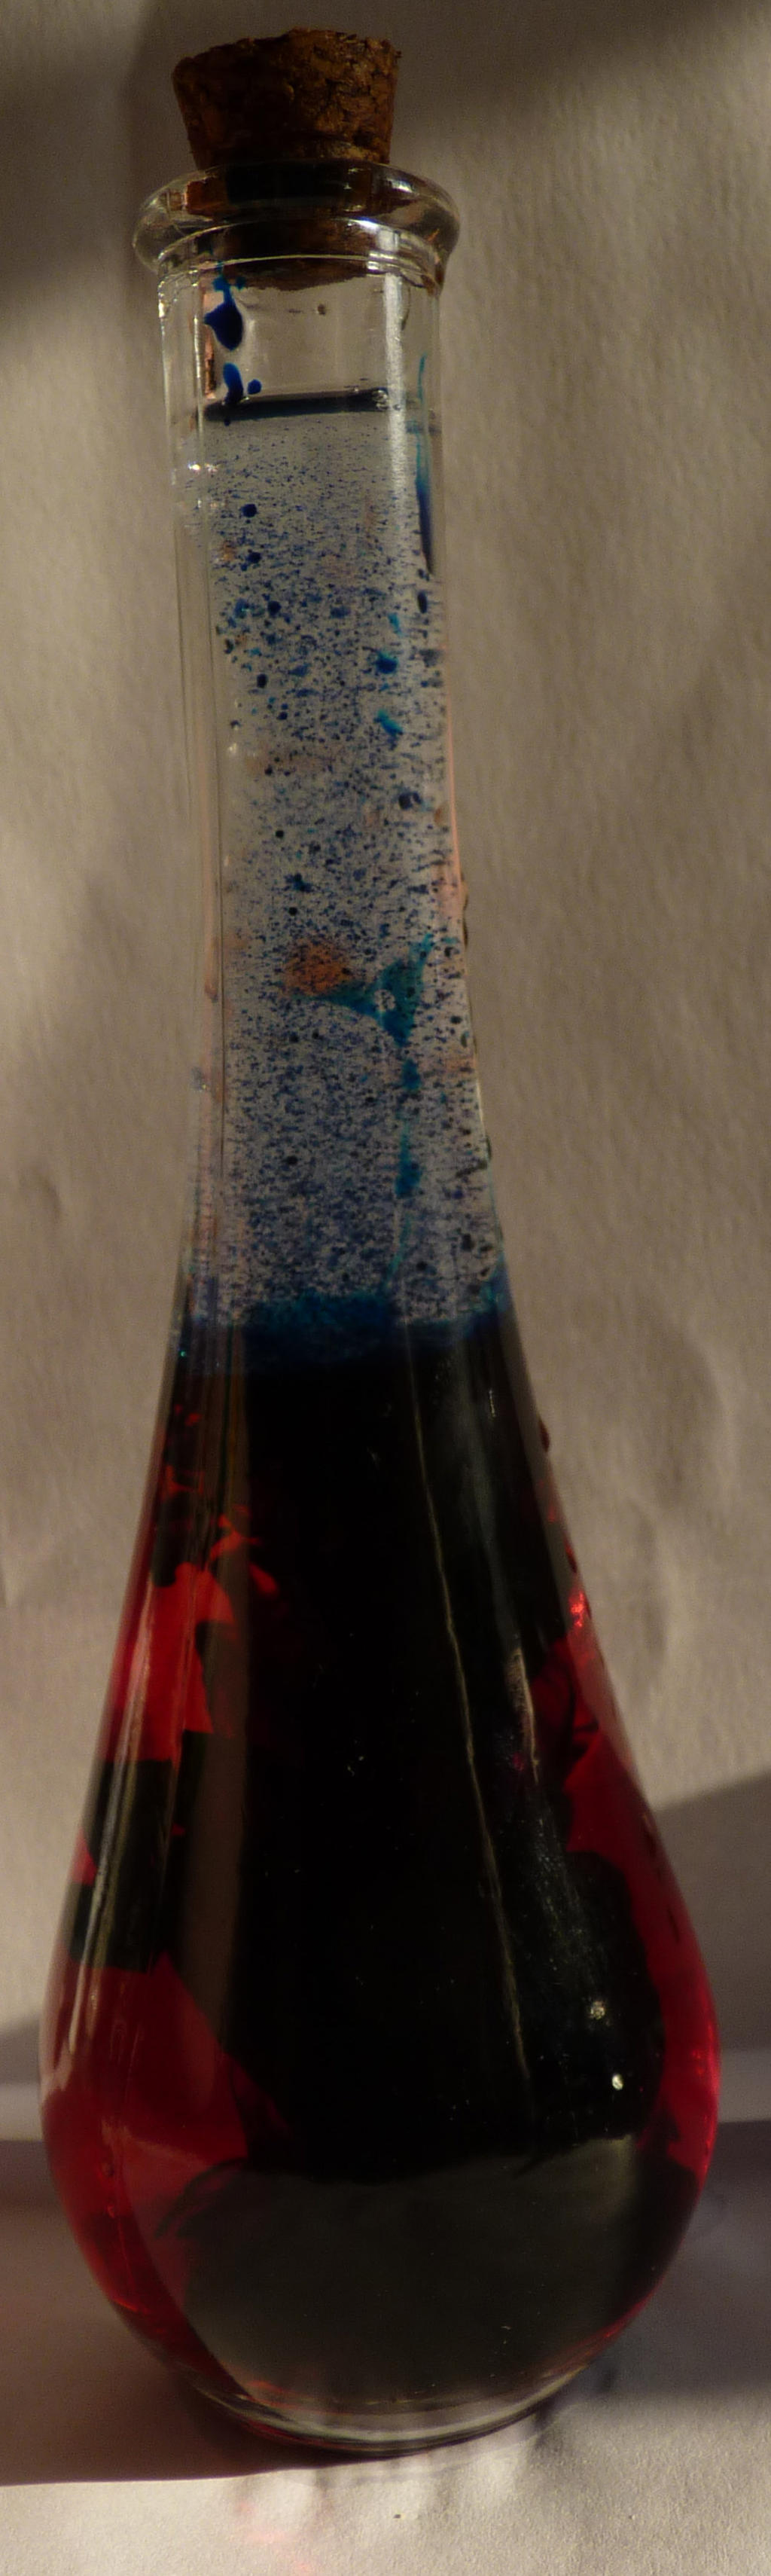 Funky Red/blue Potion by LW-Lucy